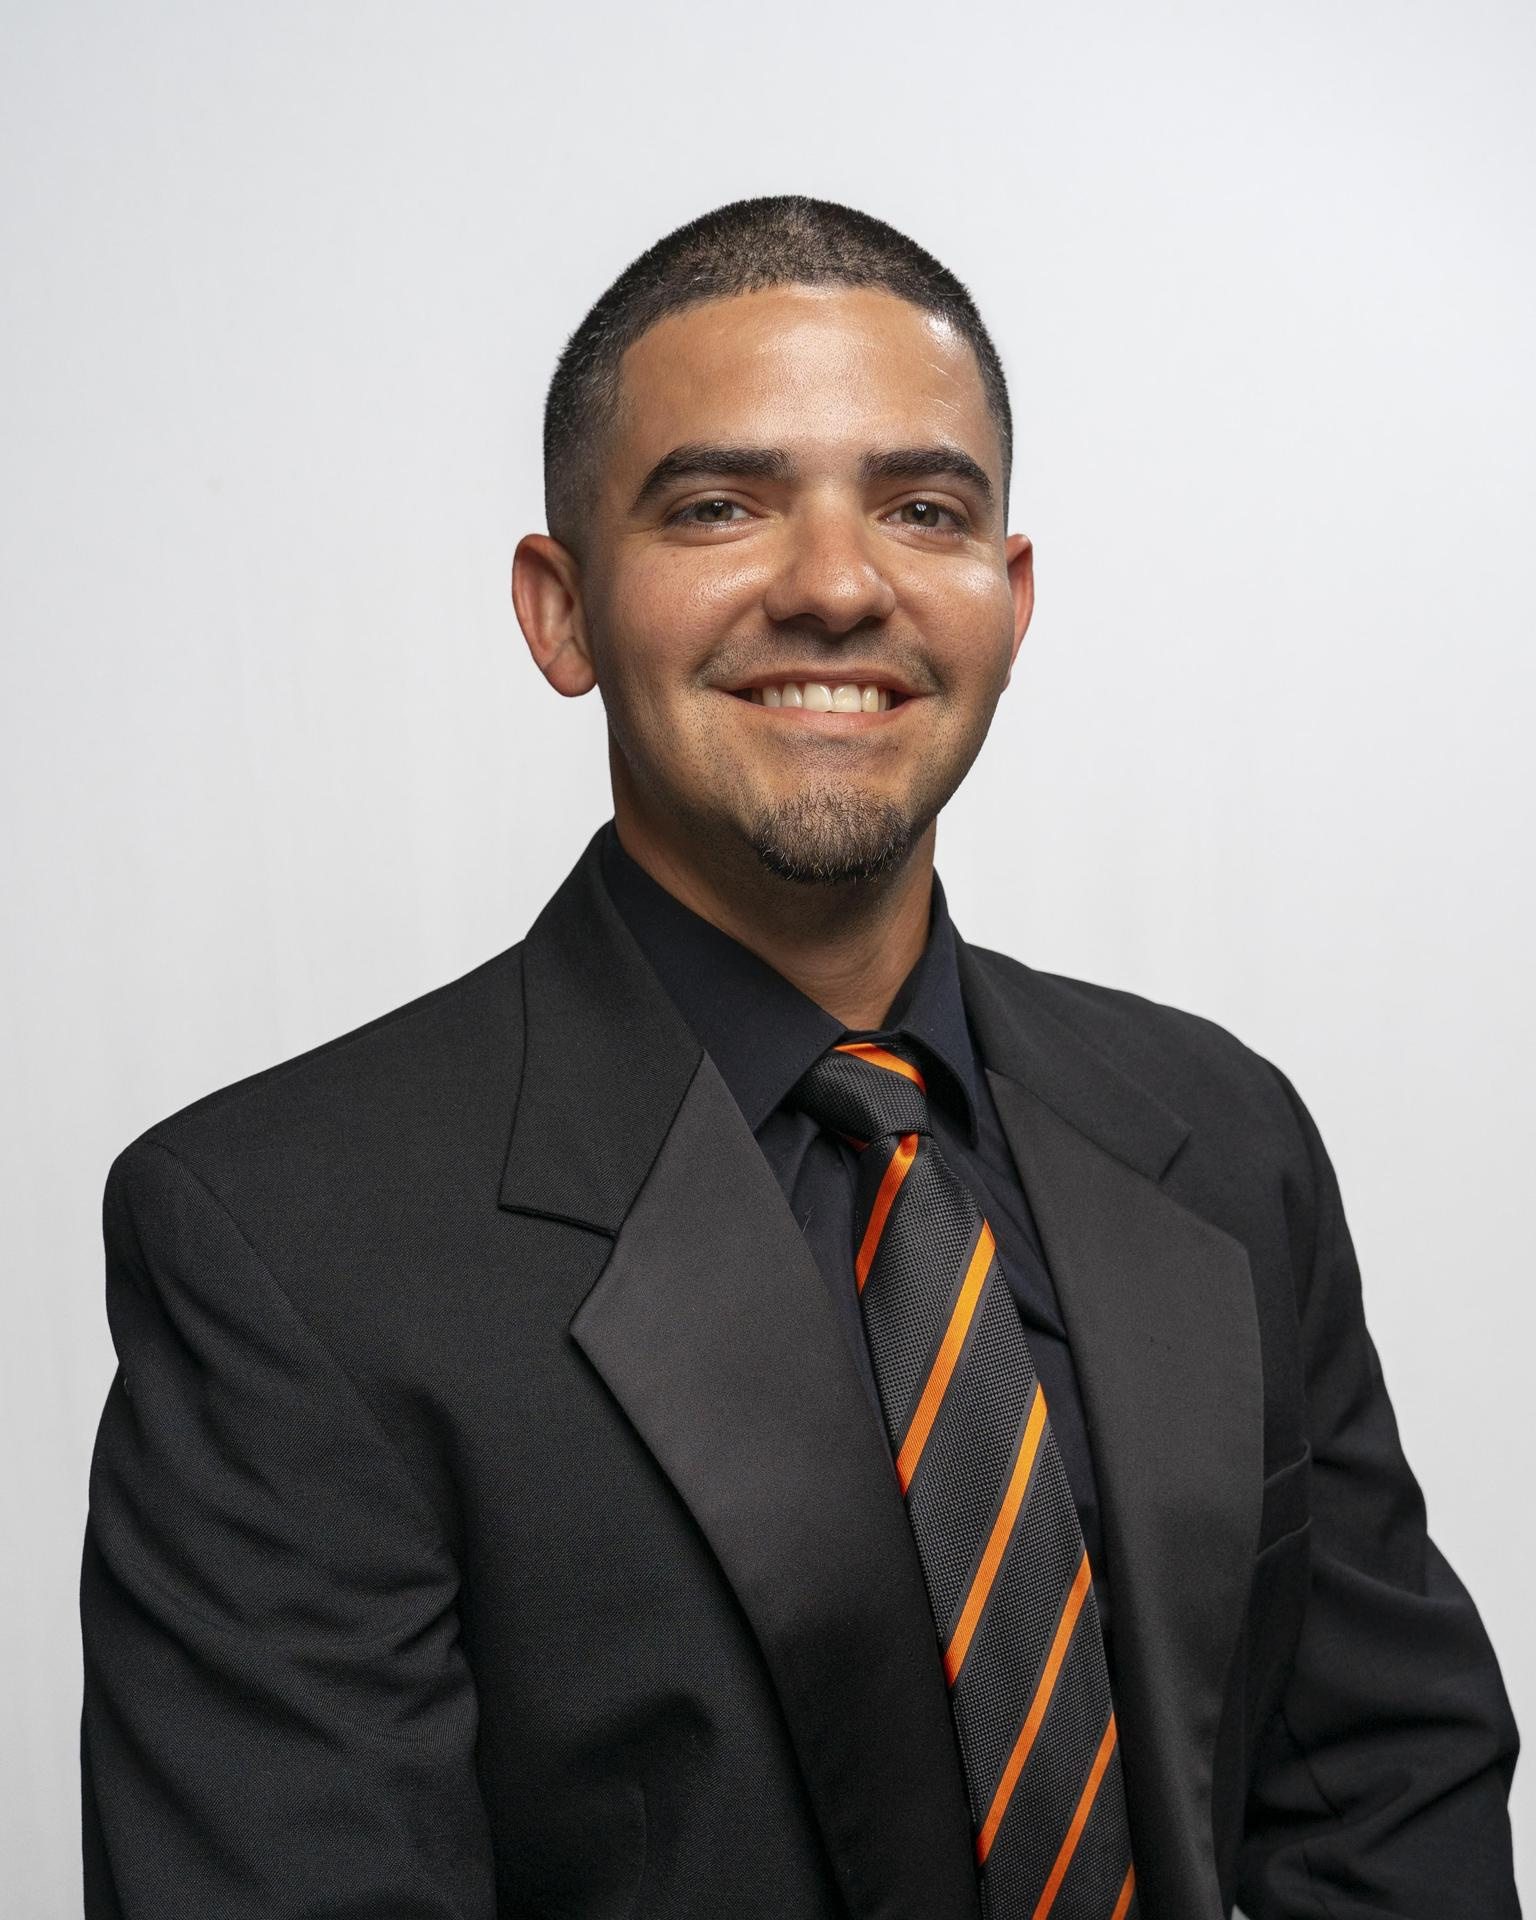 Josue Solalinde, Assistant Band Director MVHS